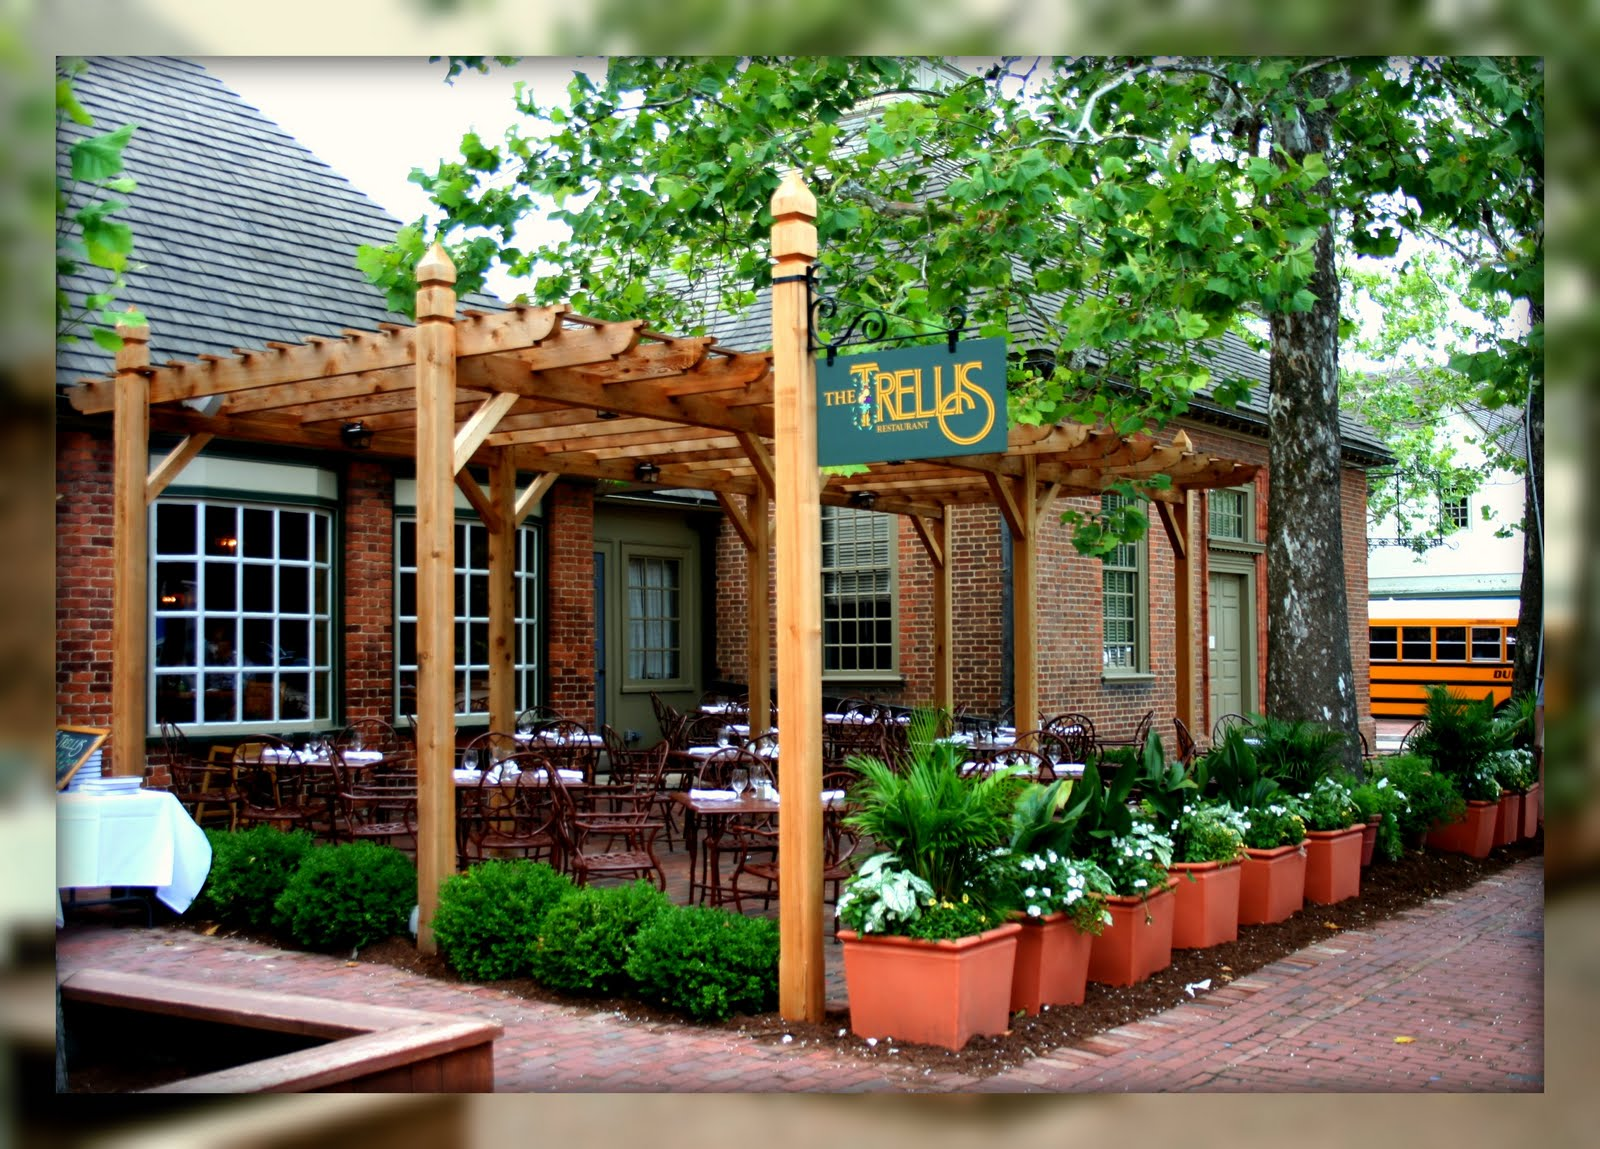 living in williamsburg virginia the trellis restaurant williamsburg virginia. Black Bedroom Furniture Sets. Home Design Ideas